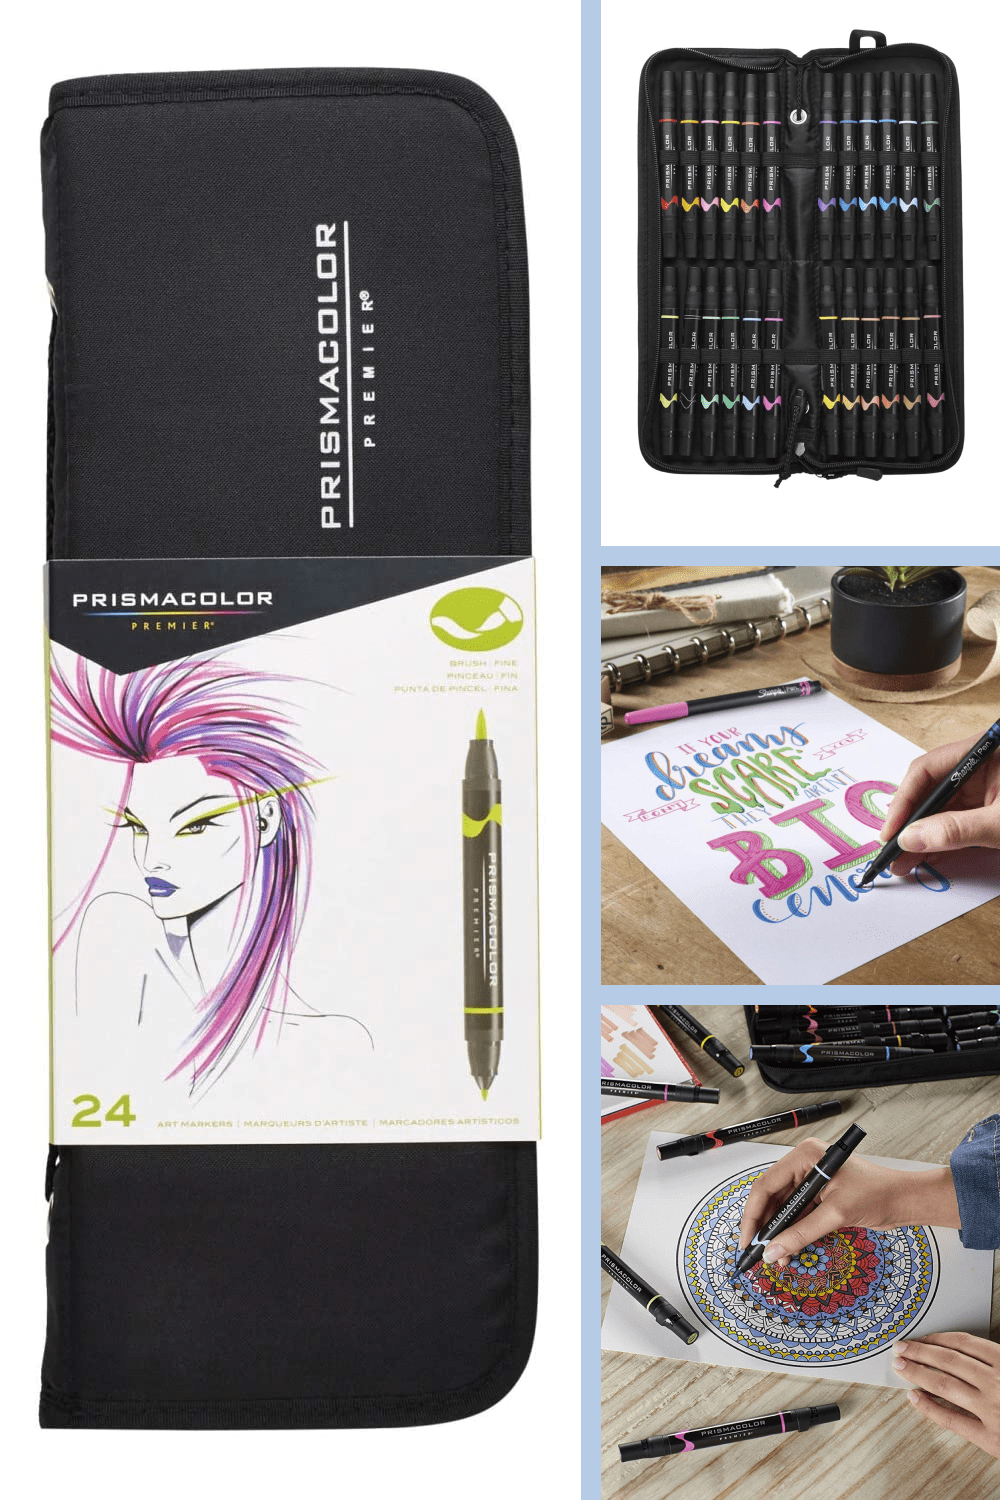 Dual ended markers featuring both fine and brush tips.